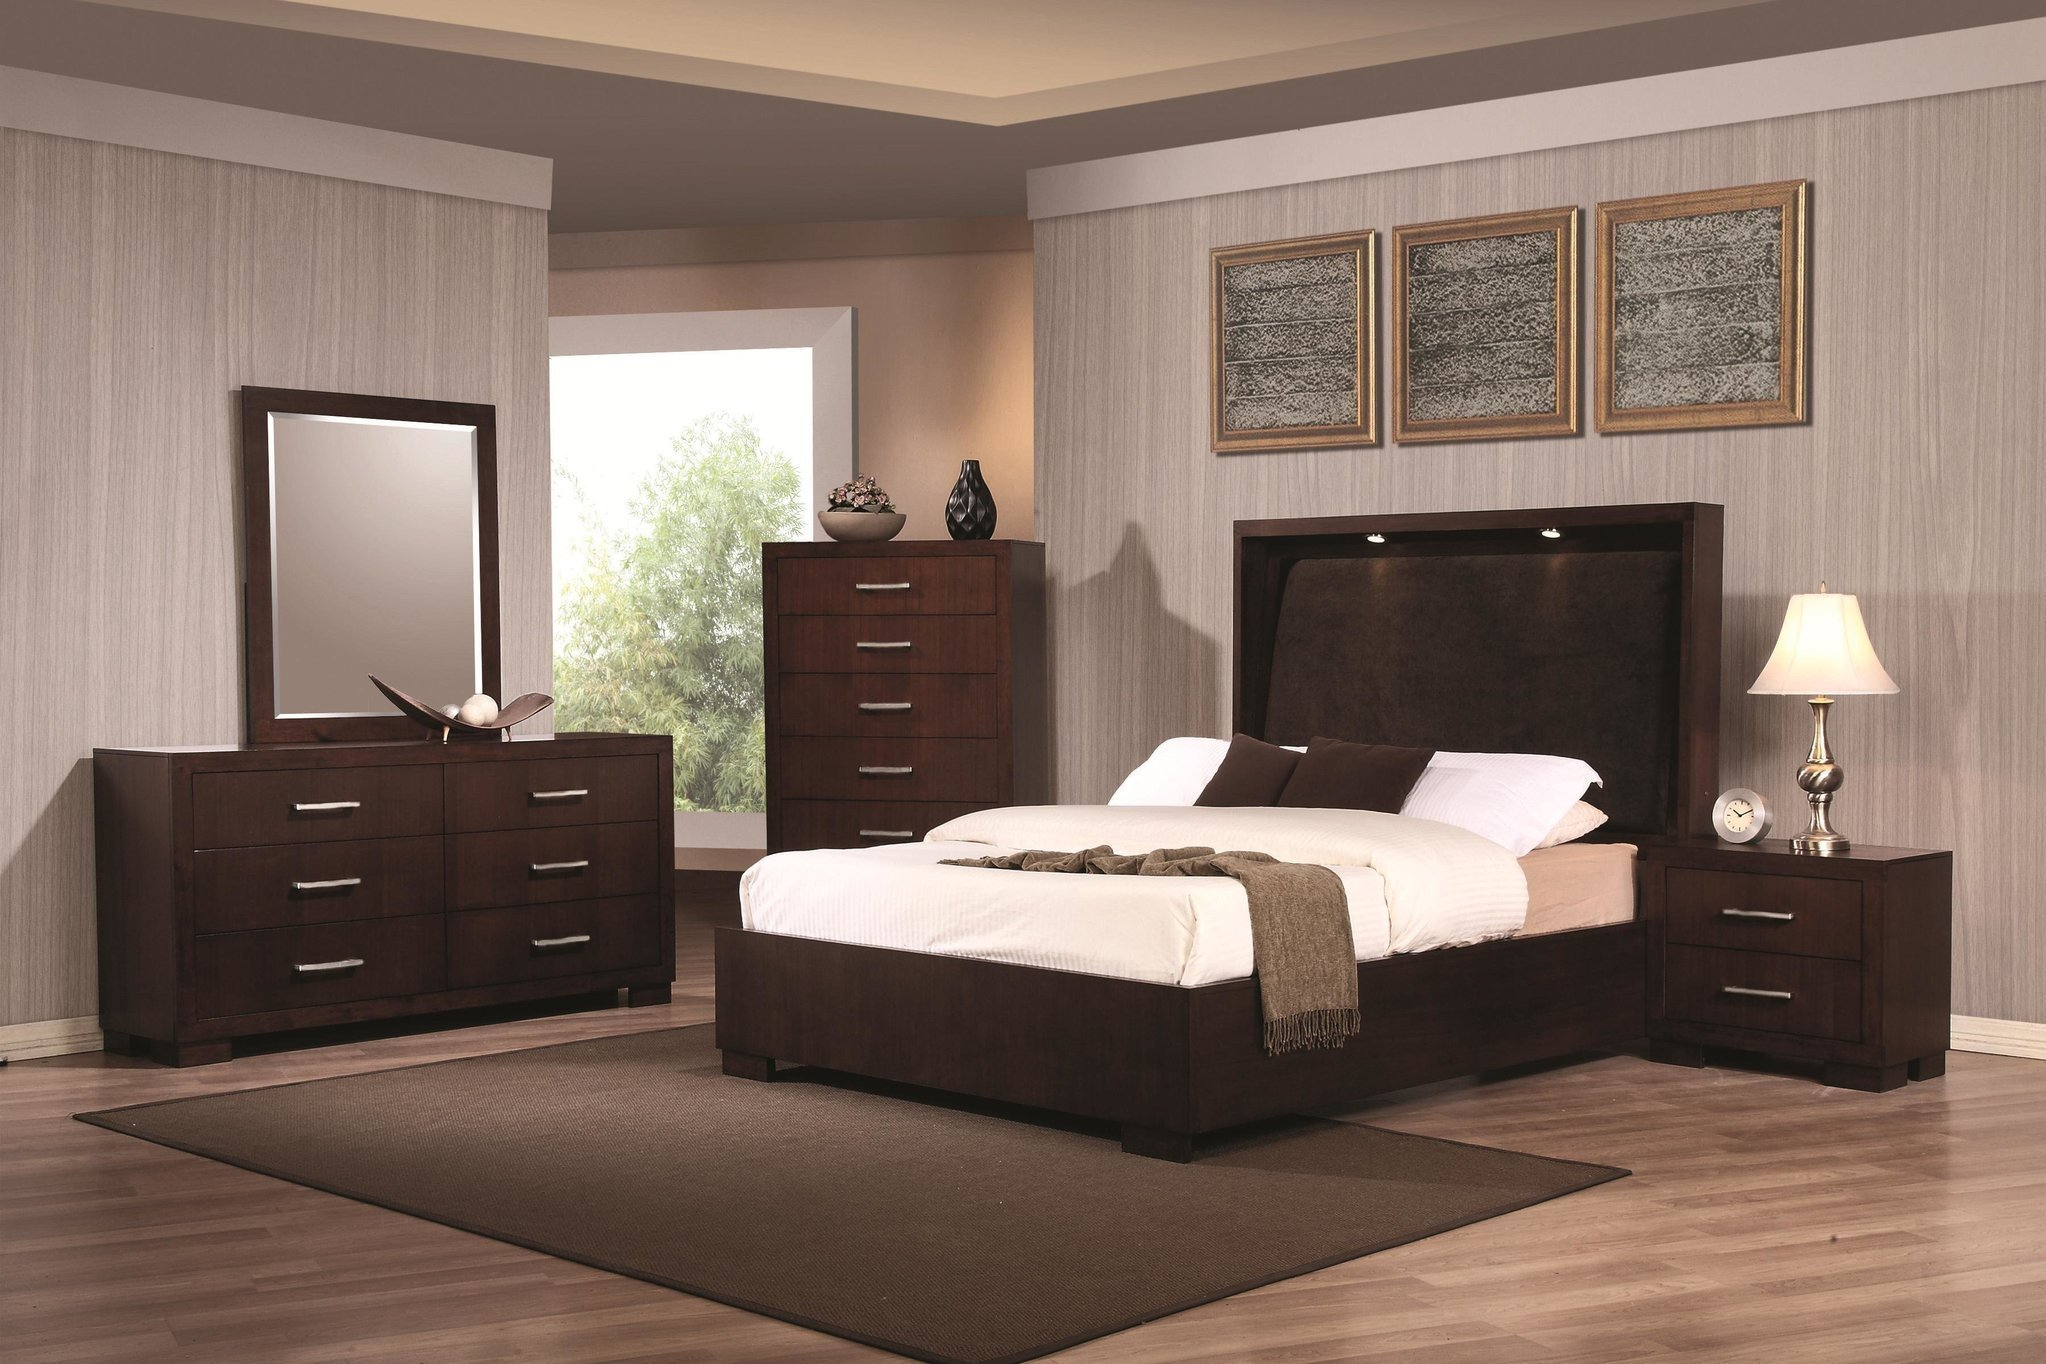 Best The Jessica Bedroom Collection With Touch Lighting With Pictures